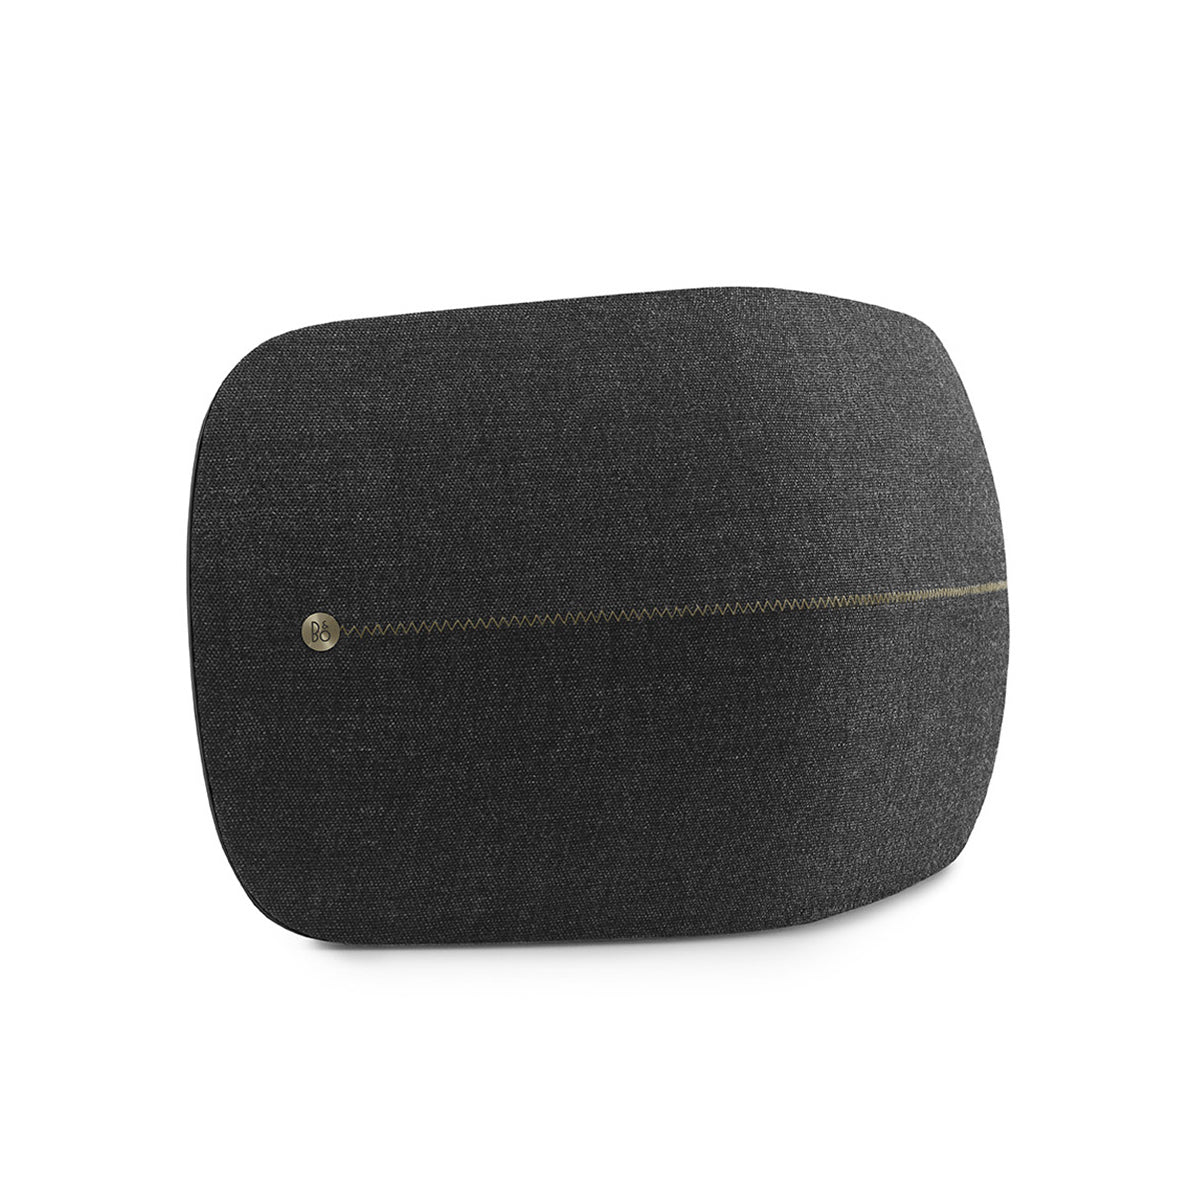 Bang & Olufsen Beoplay A6 Wireless Speaker - AVStore.in